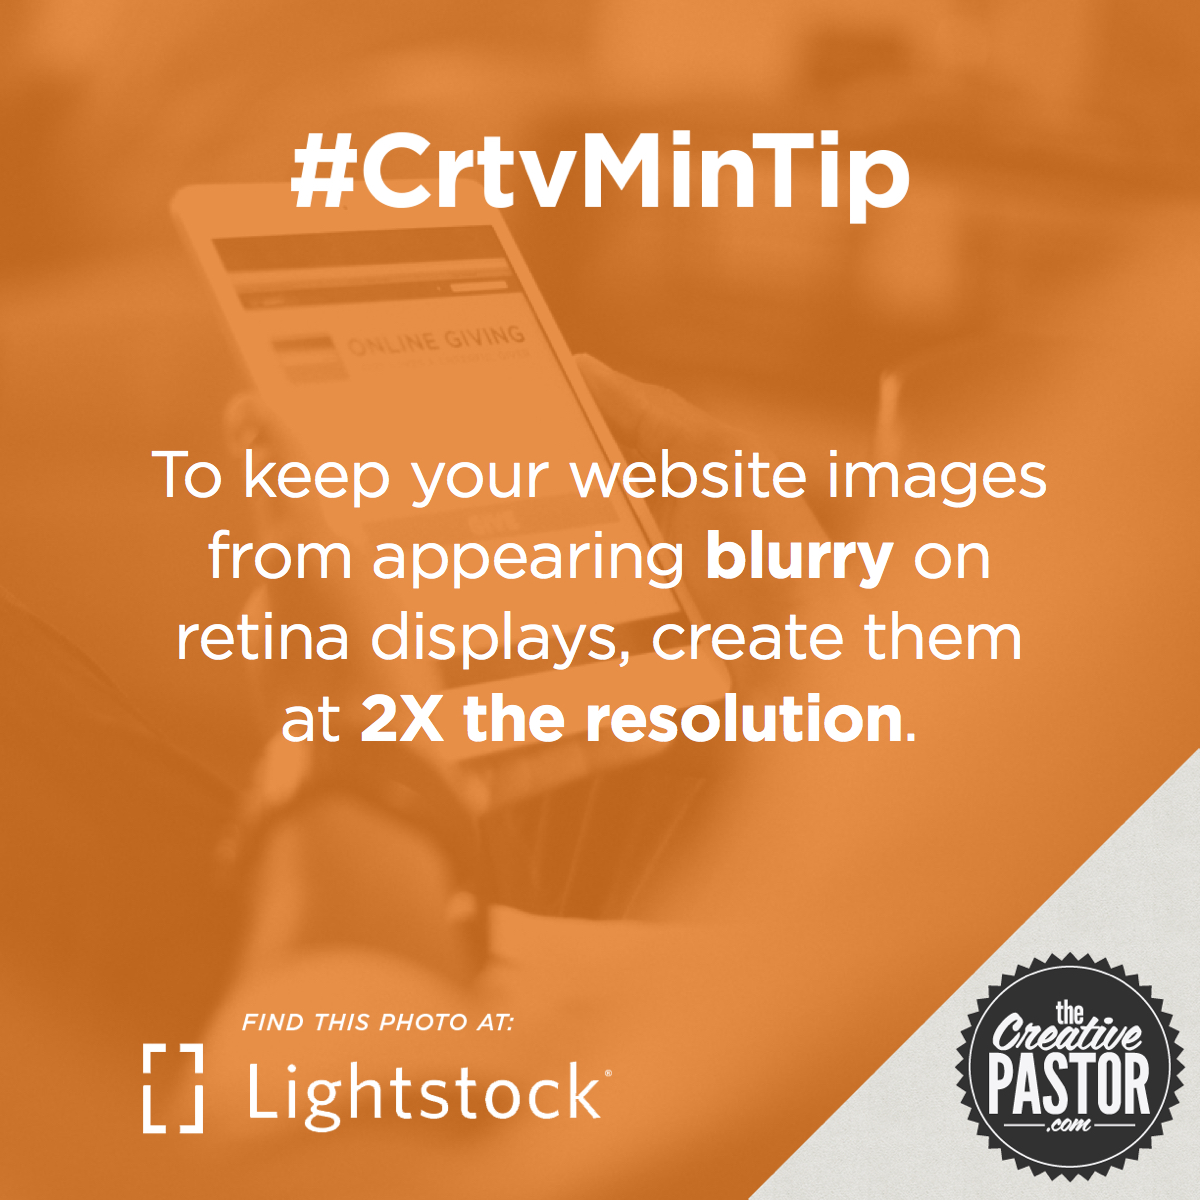 To keep your website images from appearing blurry on retina displays, create them at 2X the resolution.